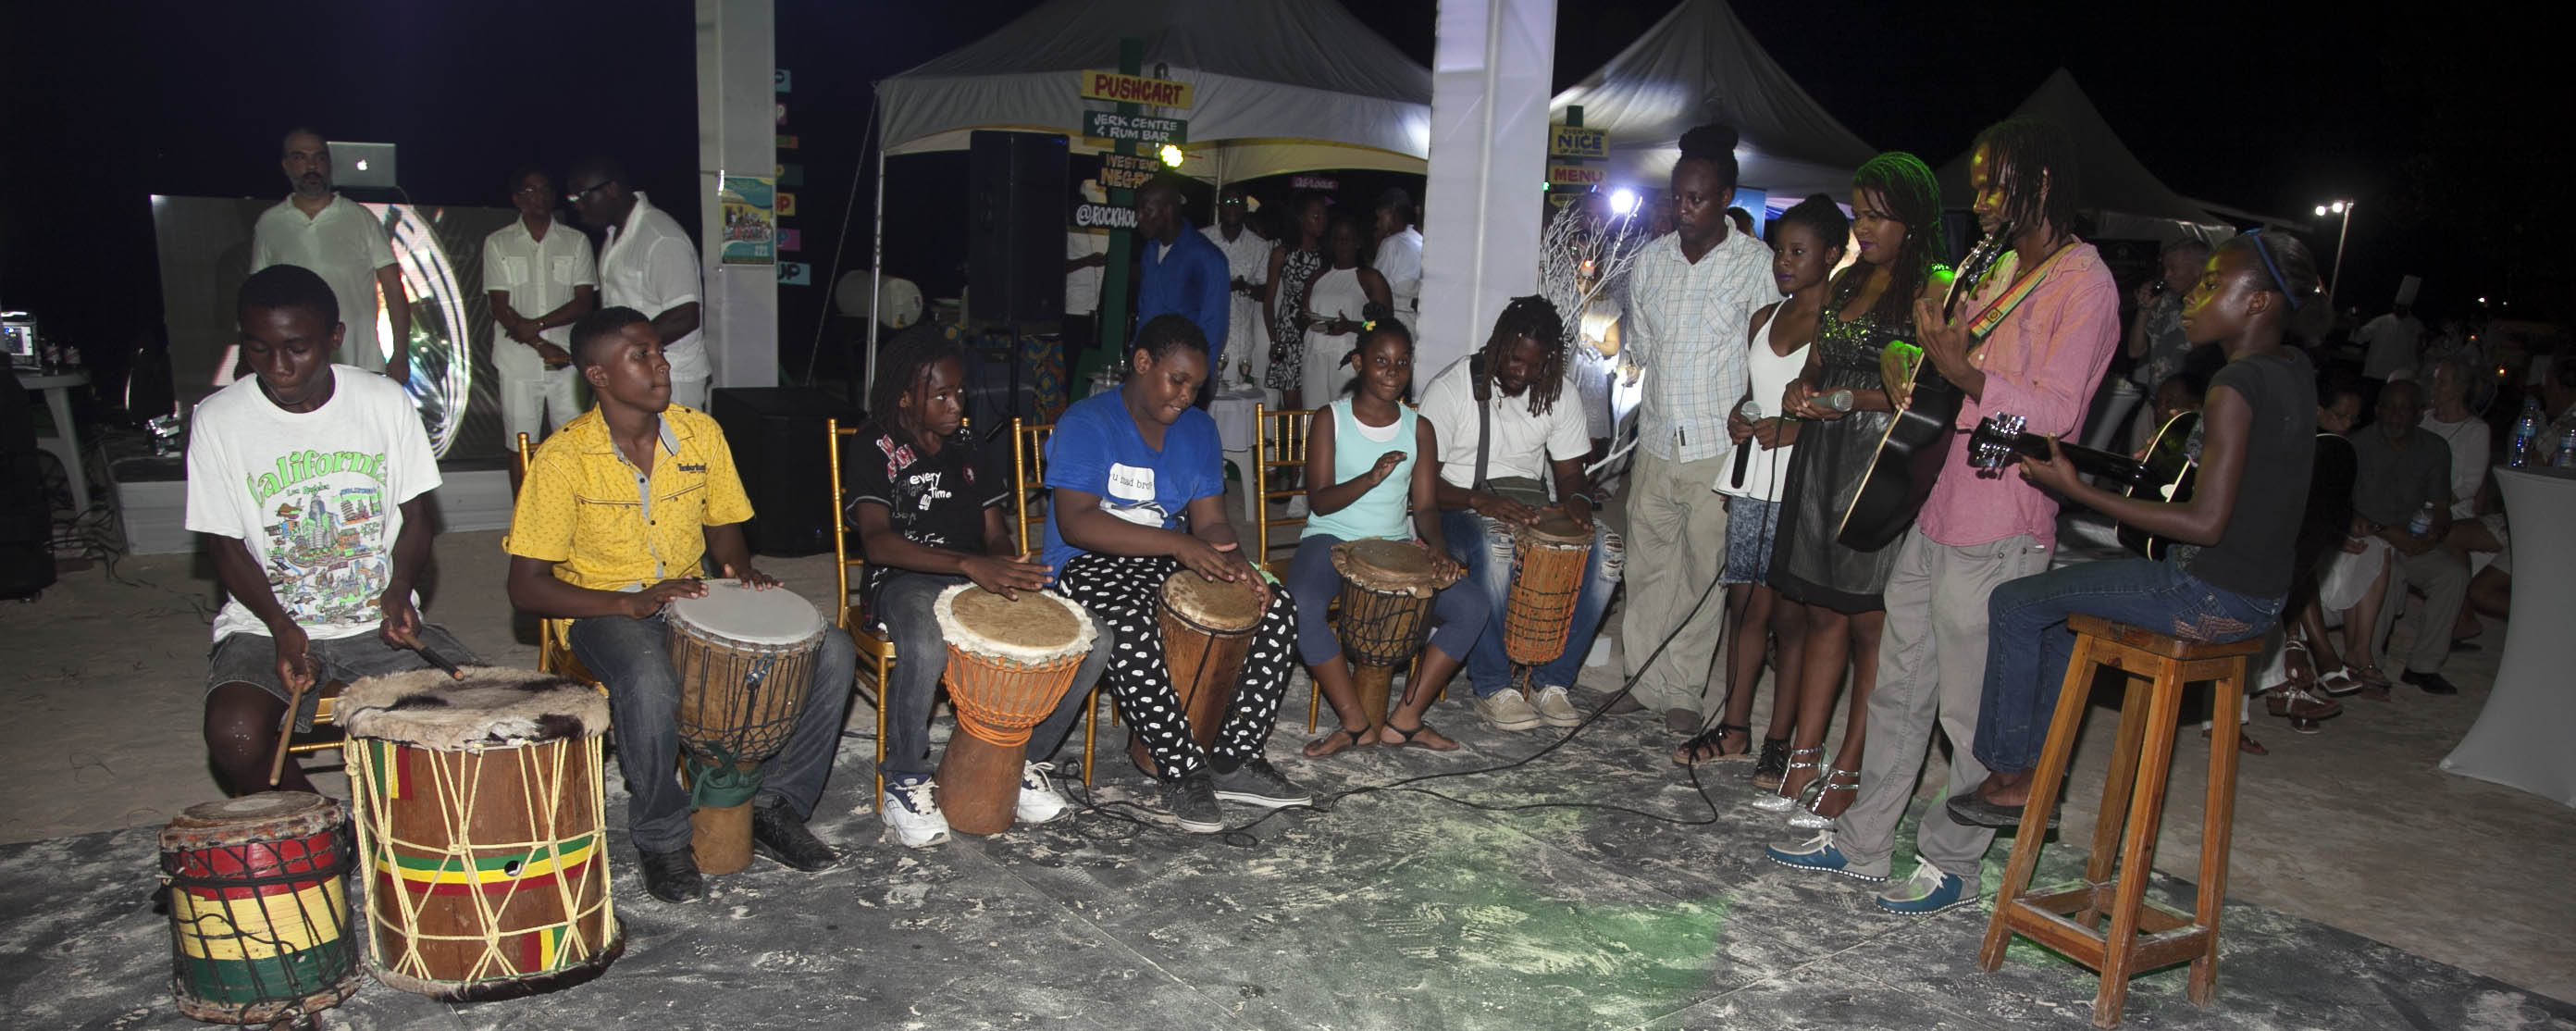 Drummers @ NCC International Food and Wine Event 2016, Negril Jamaica